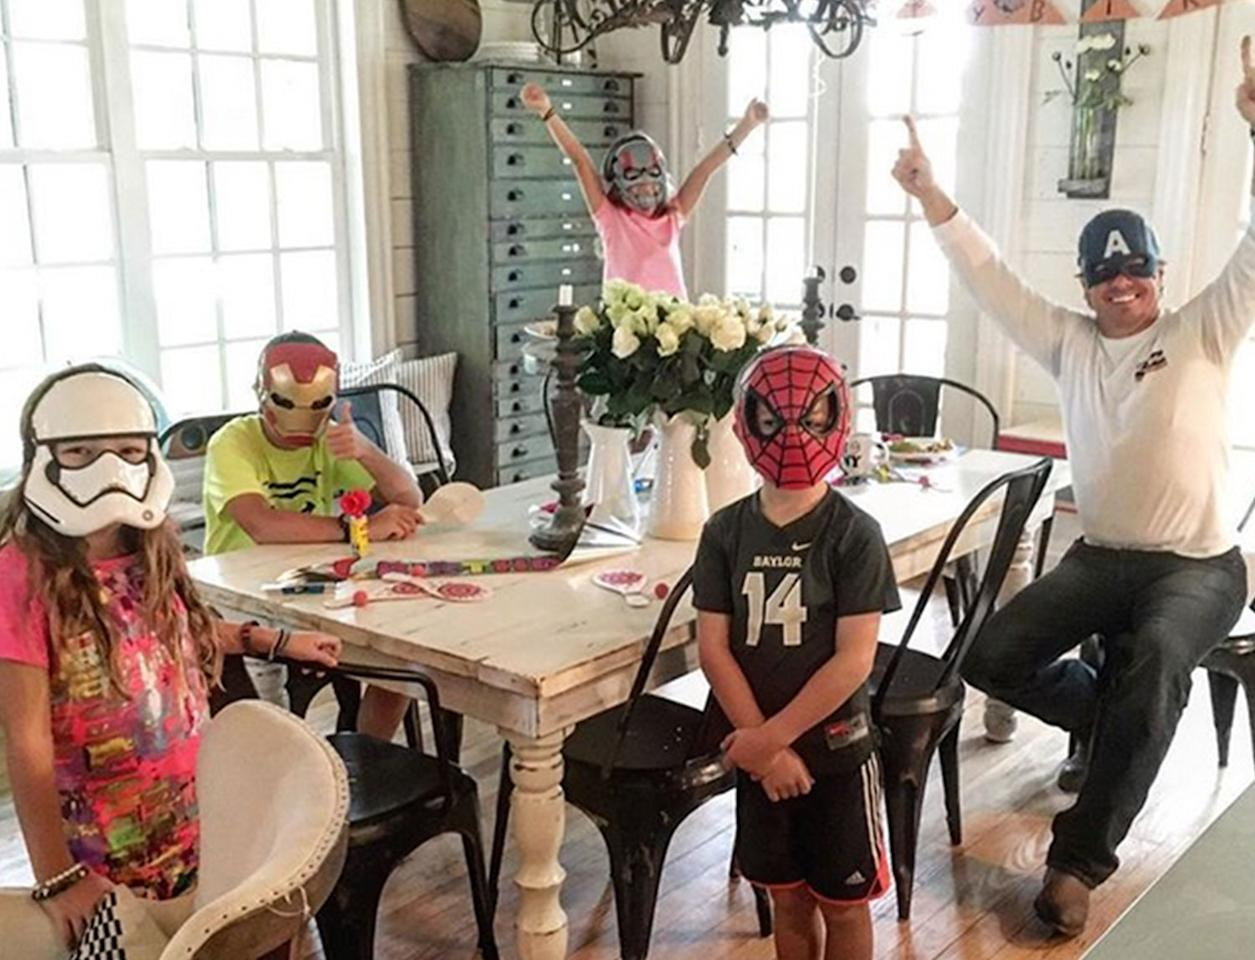 """<p>But, as it turns out, they're heroes, too. """"The best birthday surprise was waking up to the most amazing bkfst and a room full of all my favorite superheroes,"""" Joanna wrote on this spirited family shot.</p>"""